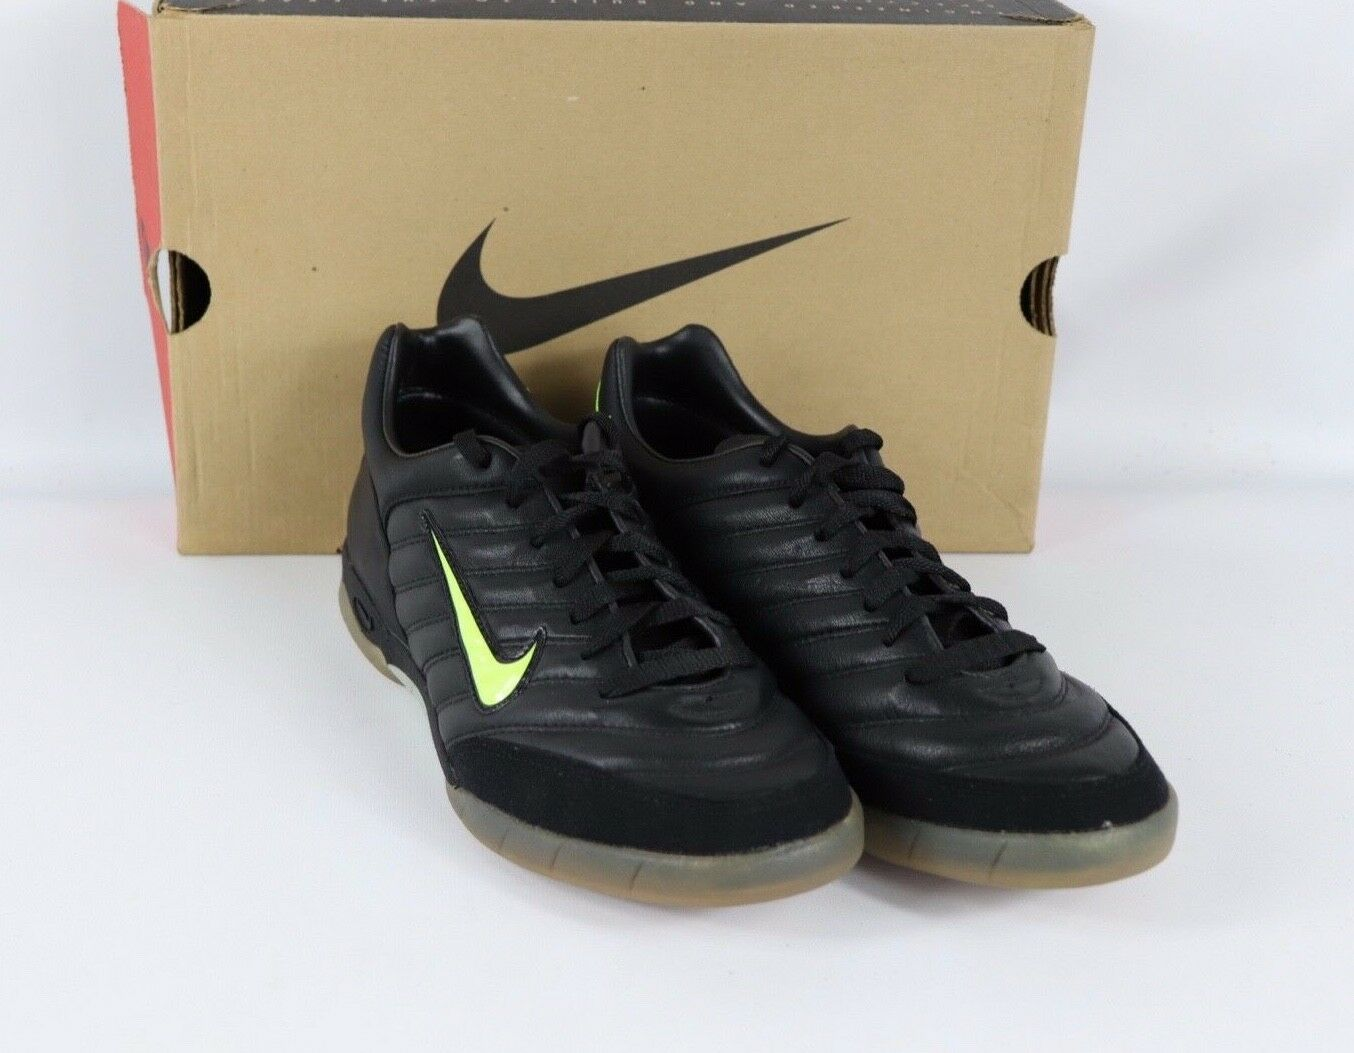 Vintage 90s New Nike Mens 8.5 Air Zoom Noventa Indoor Soccer shoes Trainers